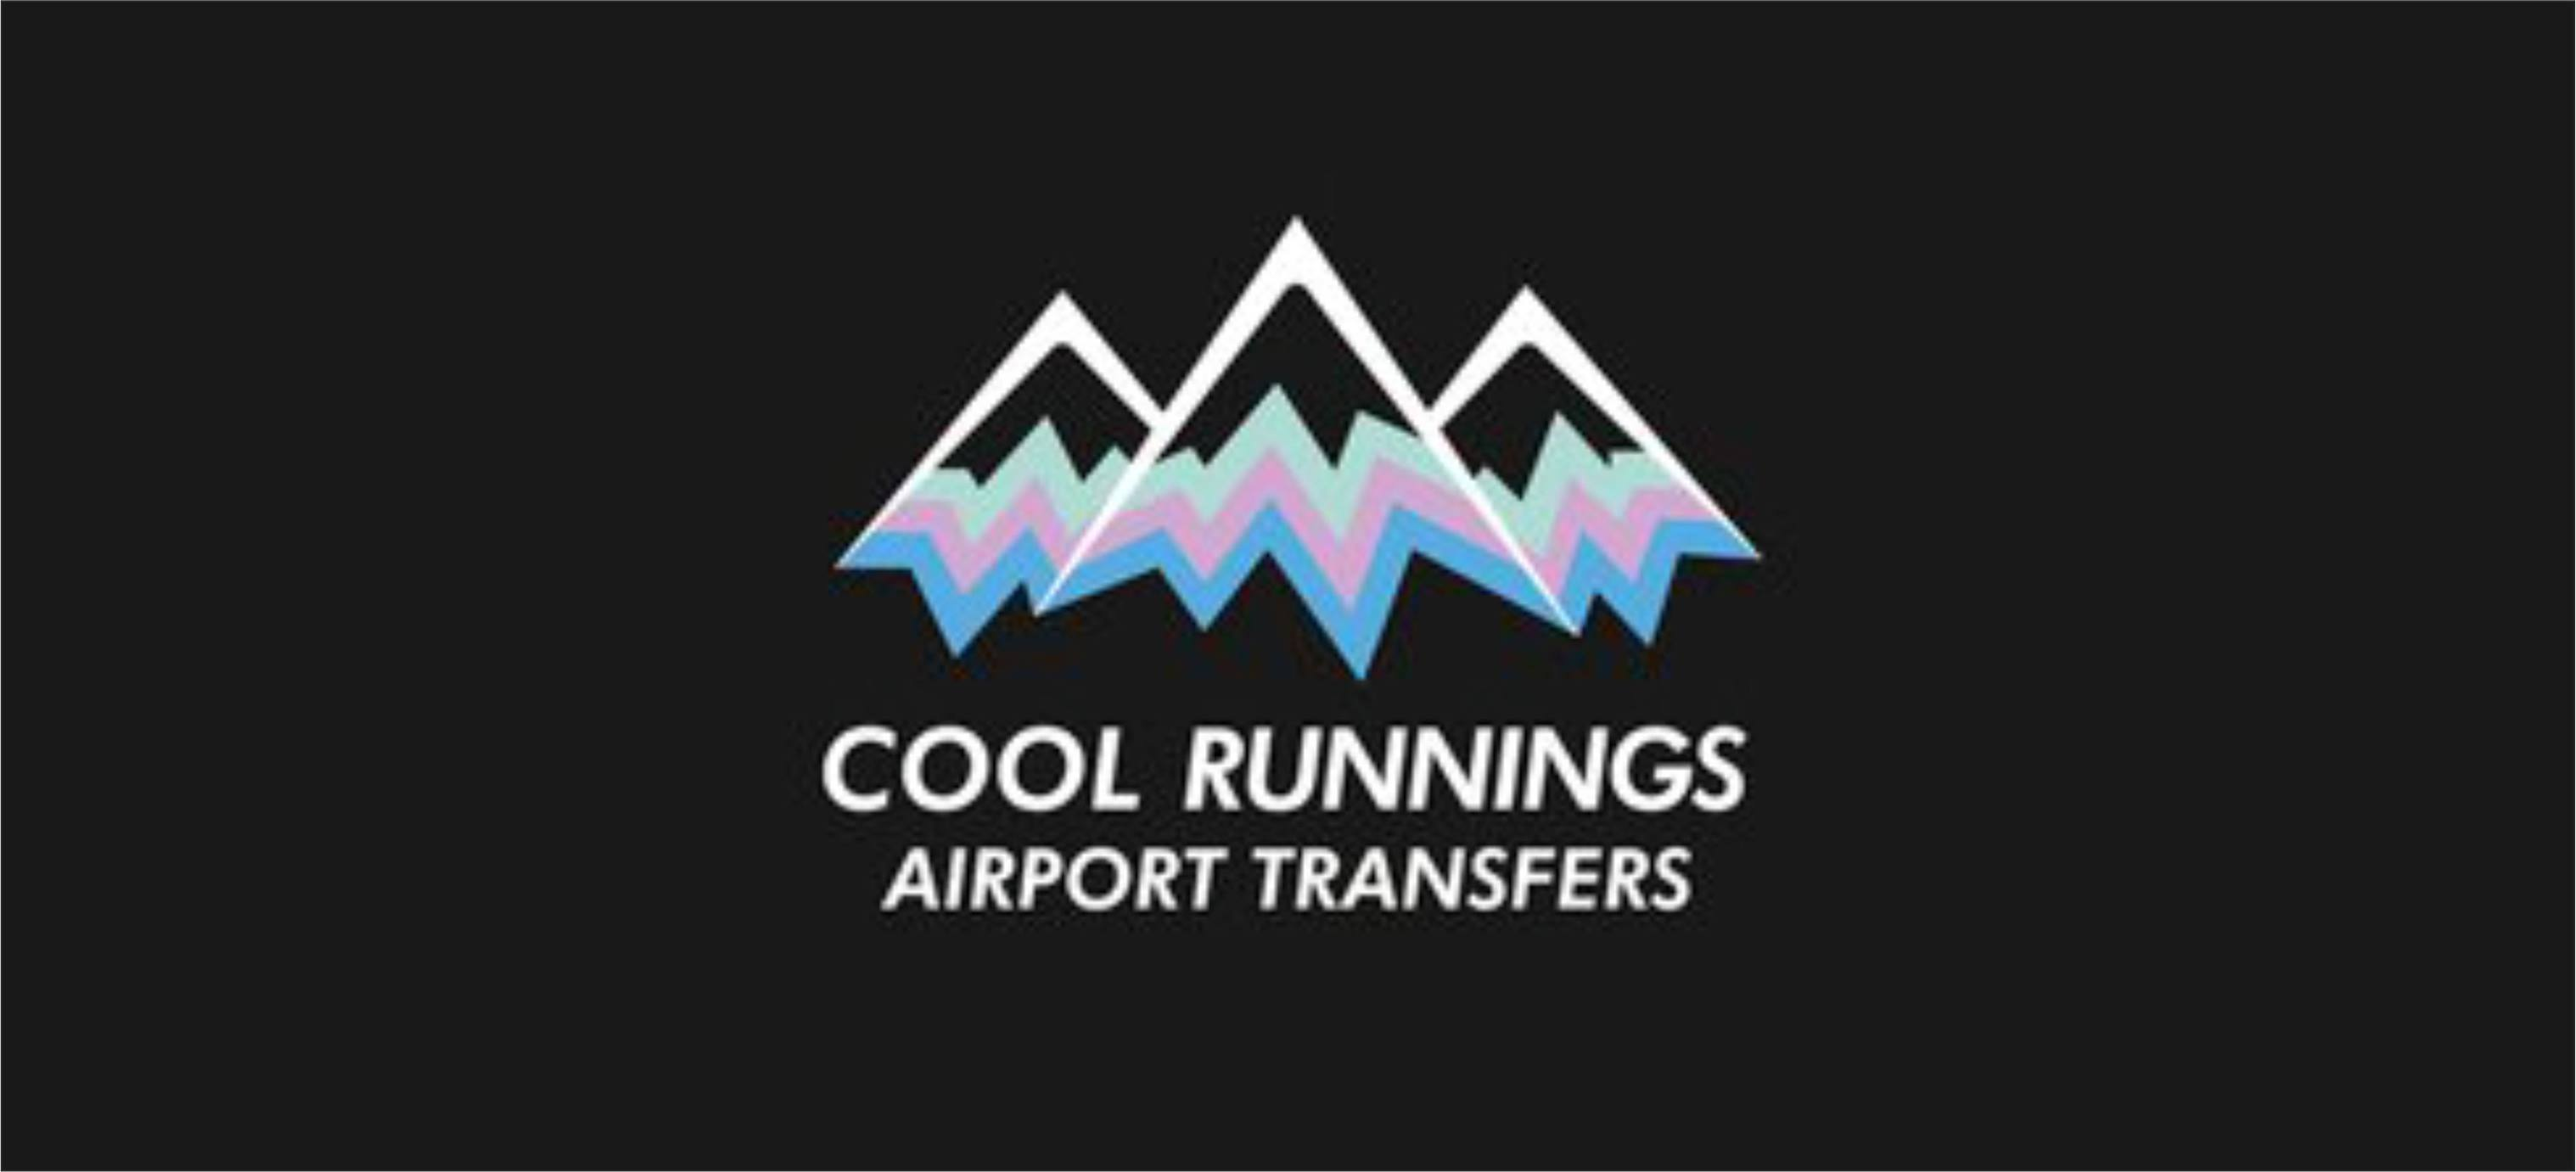 Cool Runnings Airport Transfers